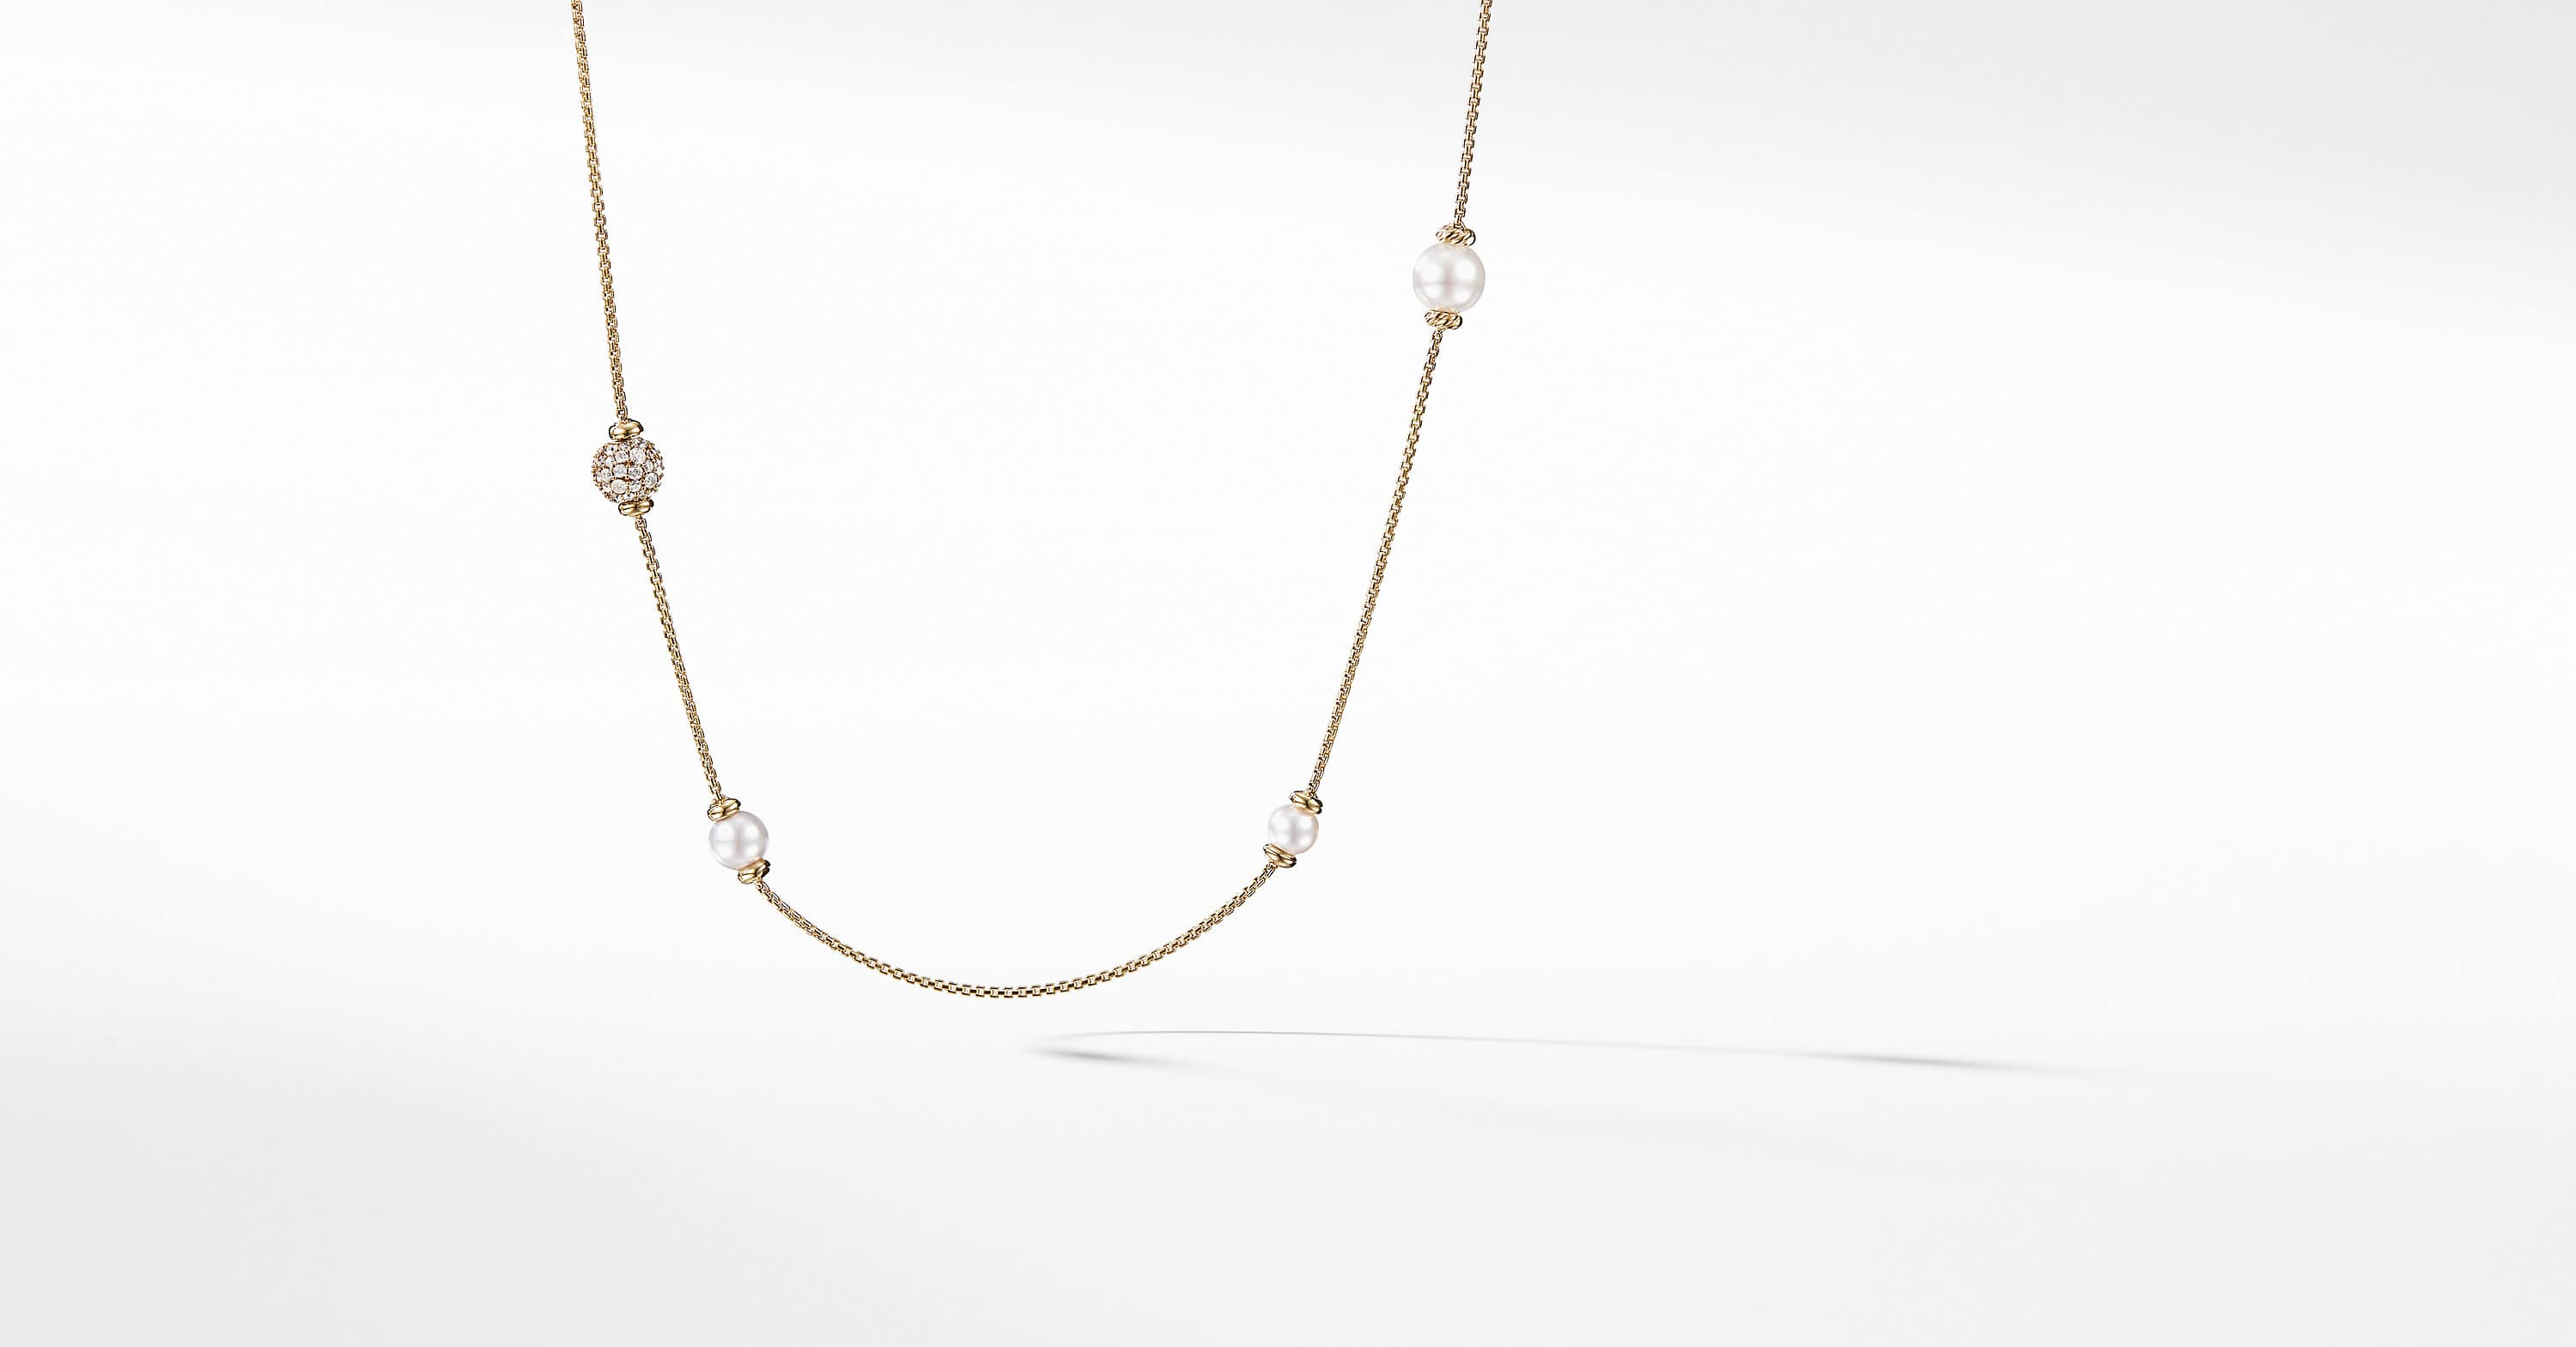 Solari Long Station Necklace with Pearls and Diamonds in 18K Yellow Gold